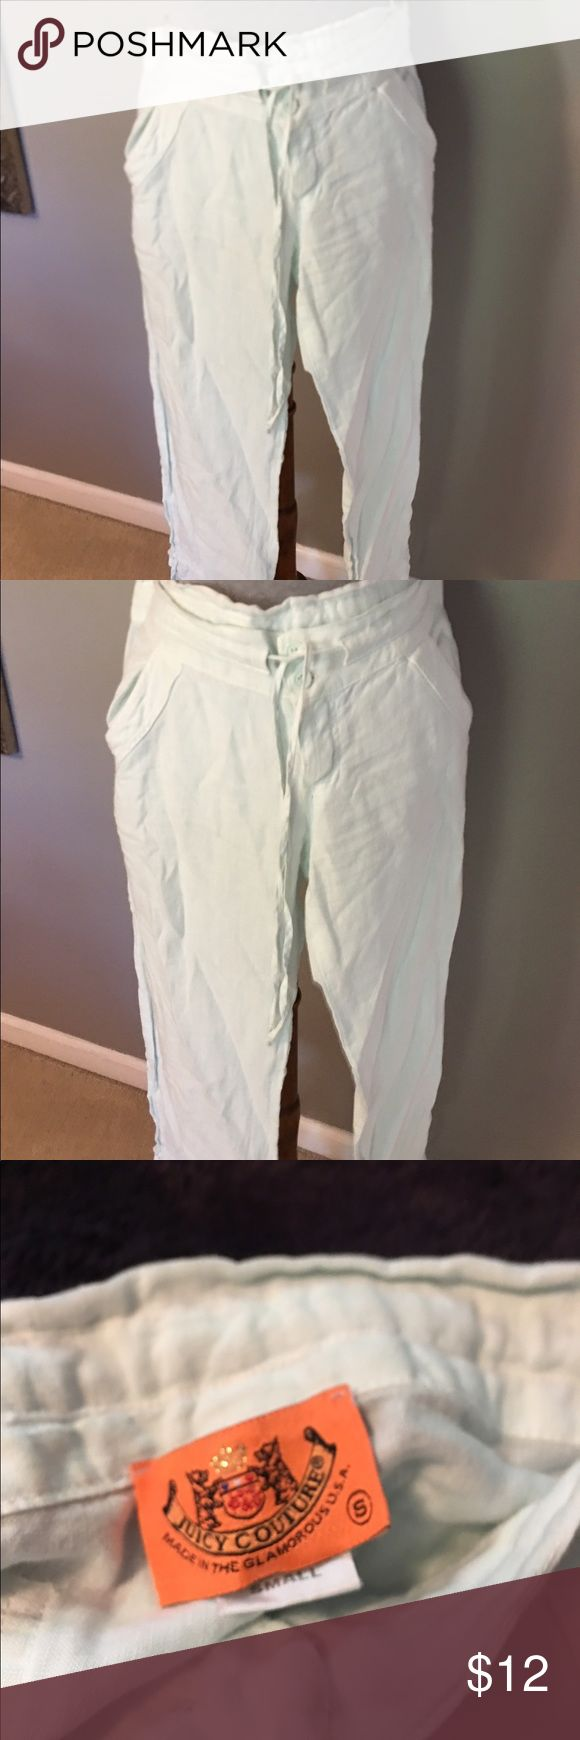 Juicy Couture Linen cropped pants w/Tie. Juicy Couture Linen cropped pants low waisted w/Tie. Color is a ice Mint. Draw string waist with buttons, draw string bottoms. 24' long, Juicy Couture Pants Capris